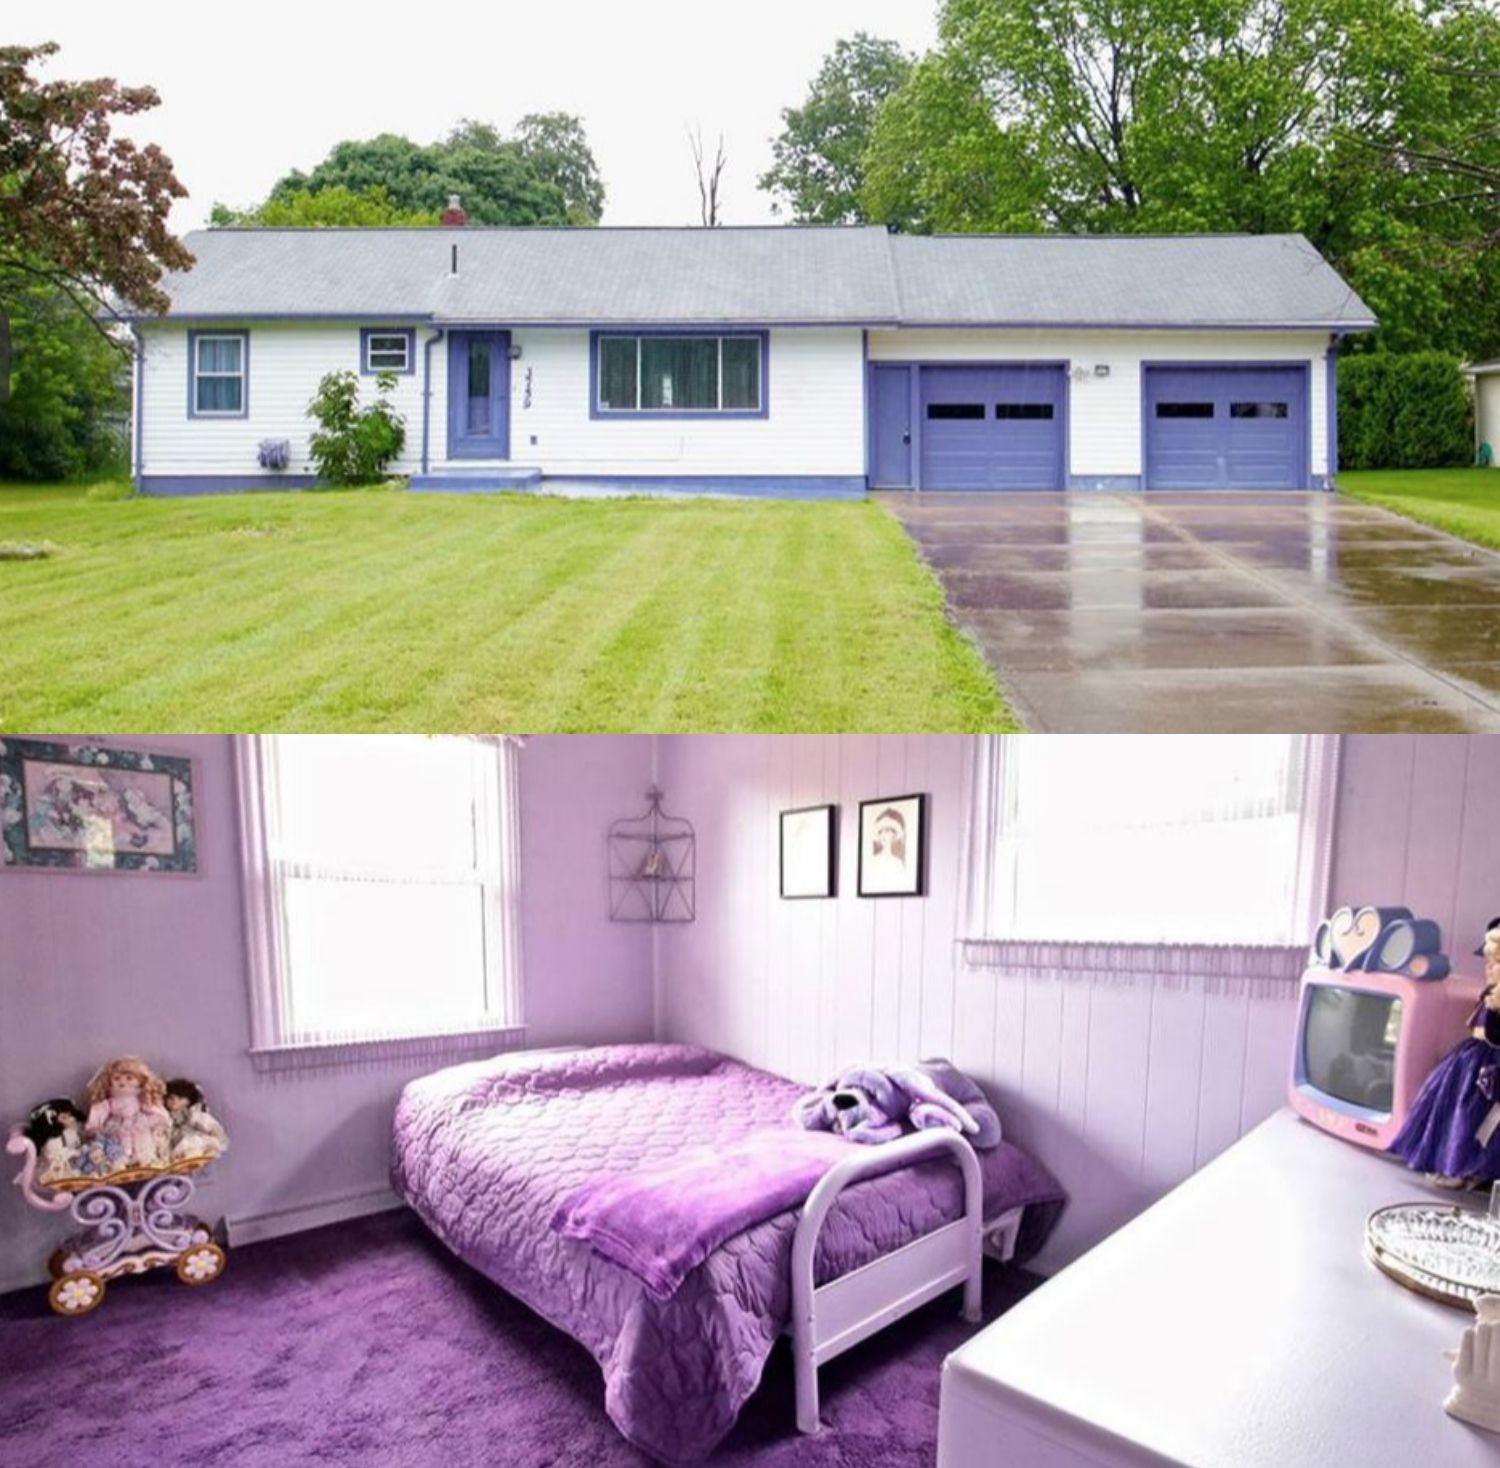 Every Inch of This Home Was Decorated in Shades of Purple